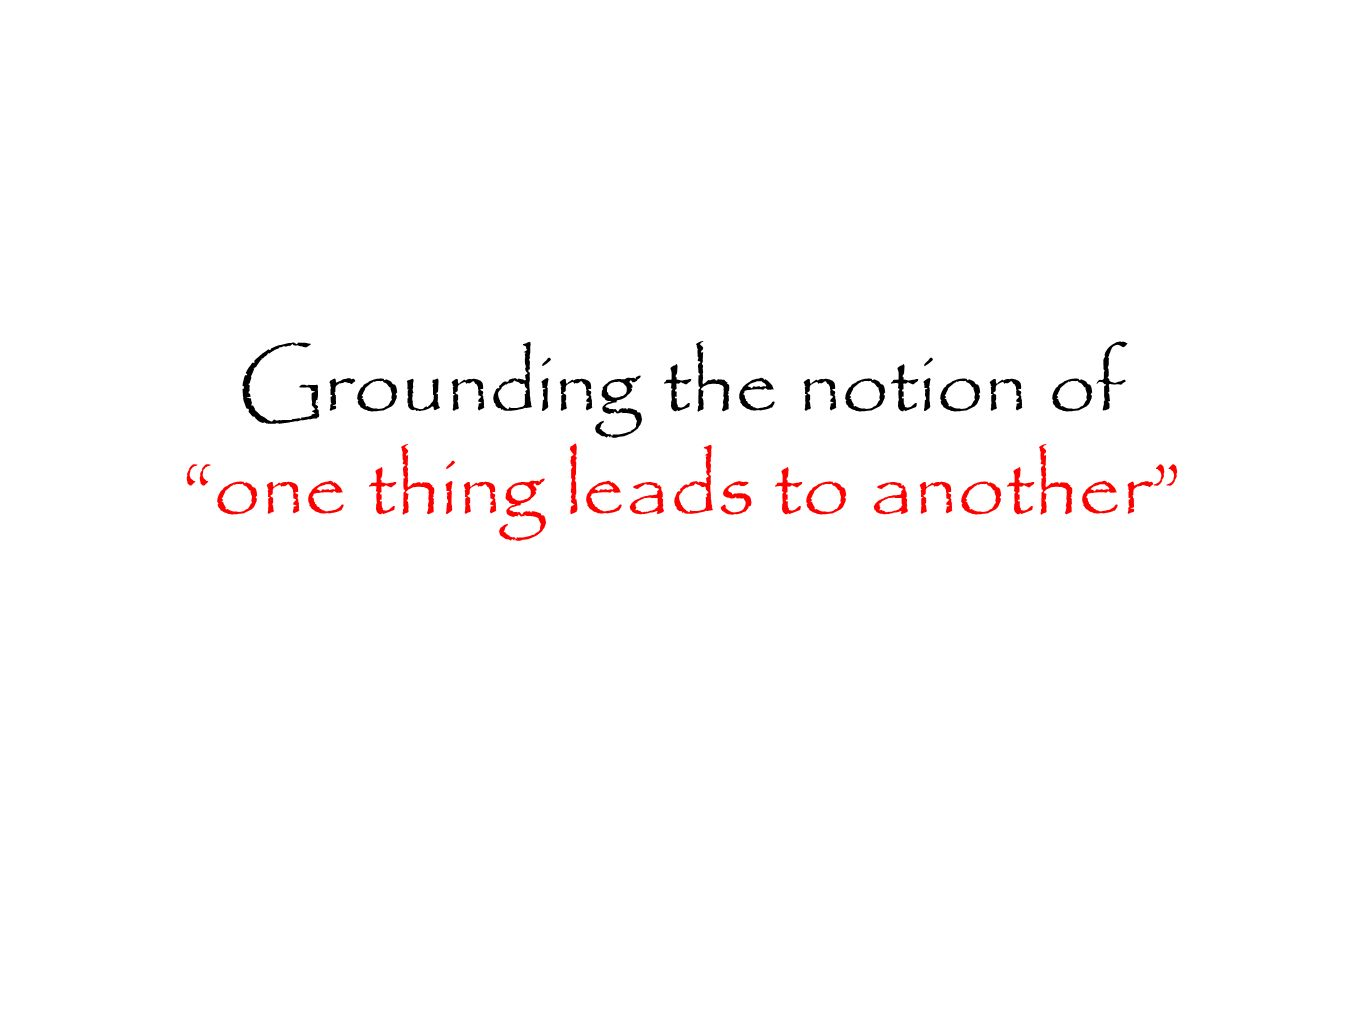 Grounding the notion of one thing leads to another